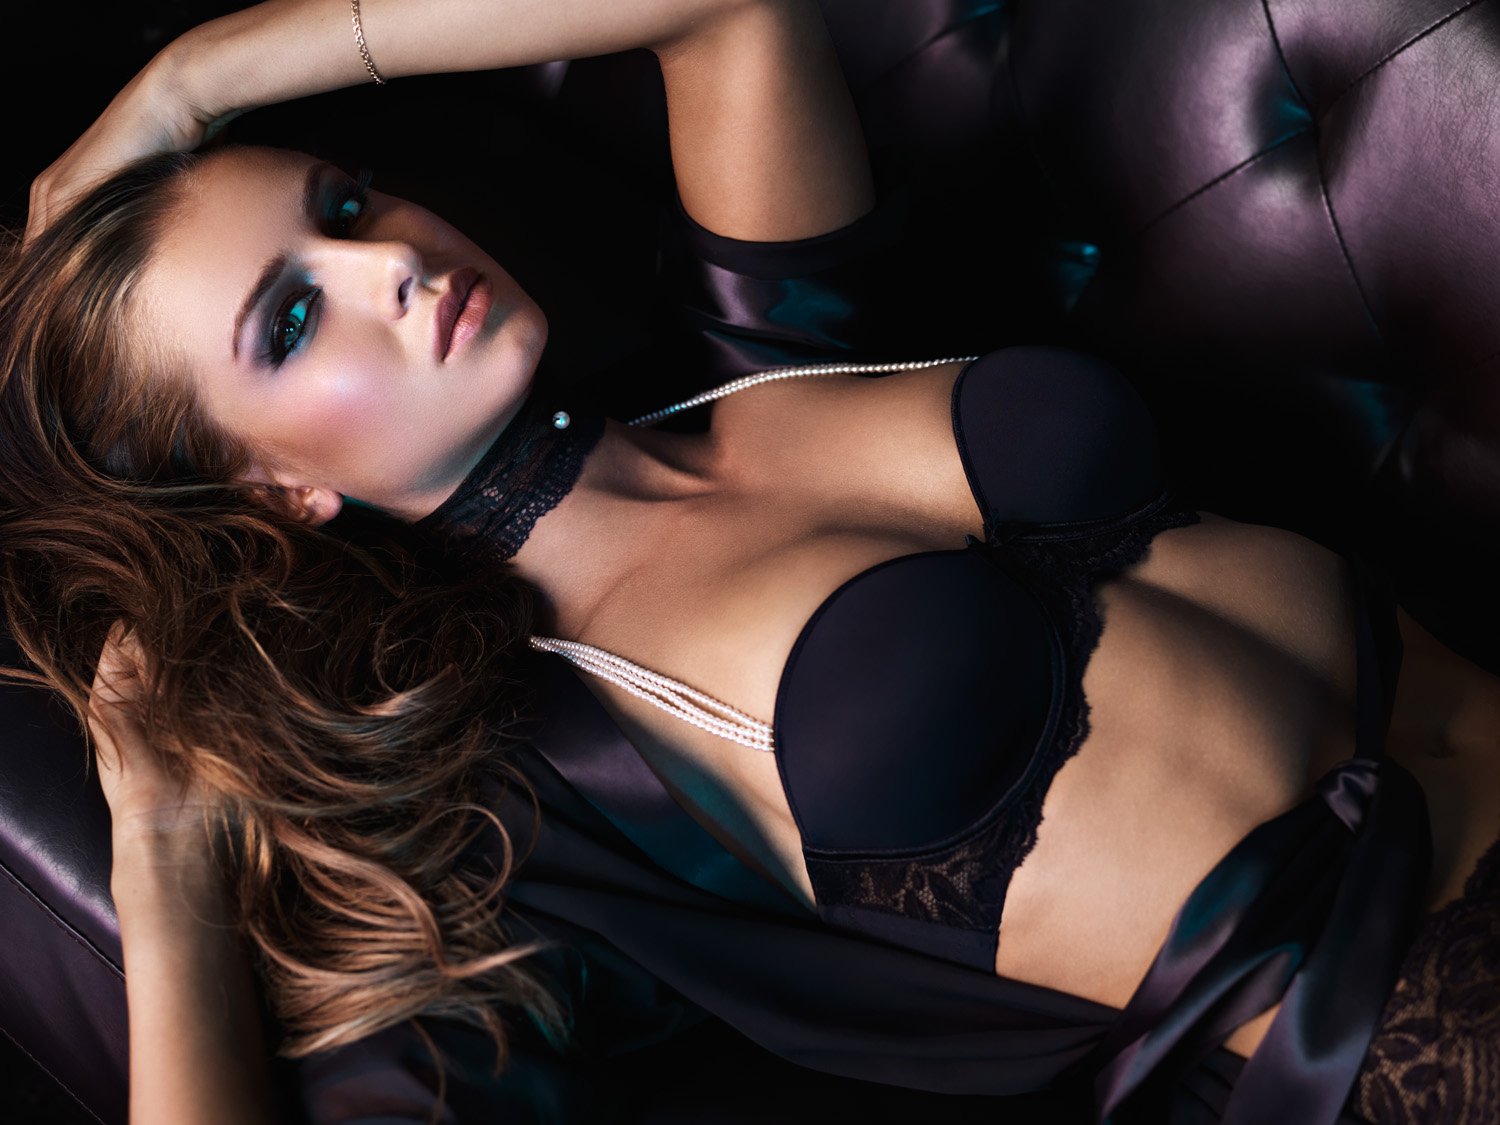 Appealing Lingerie woman lounging